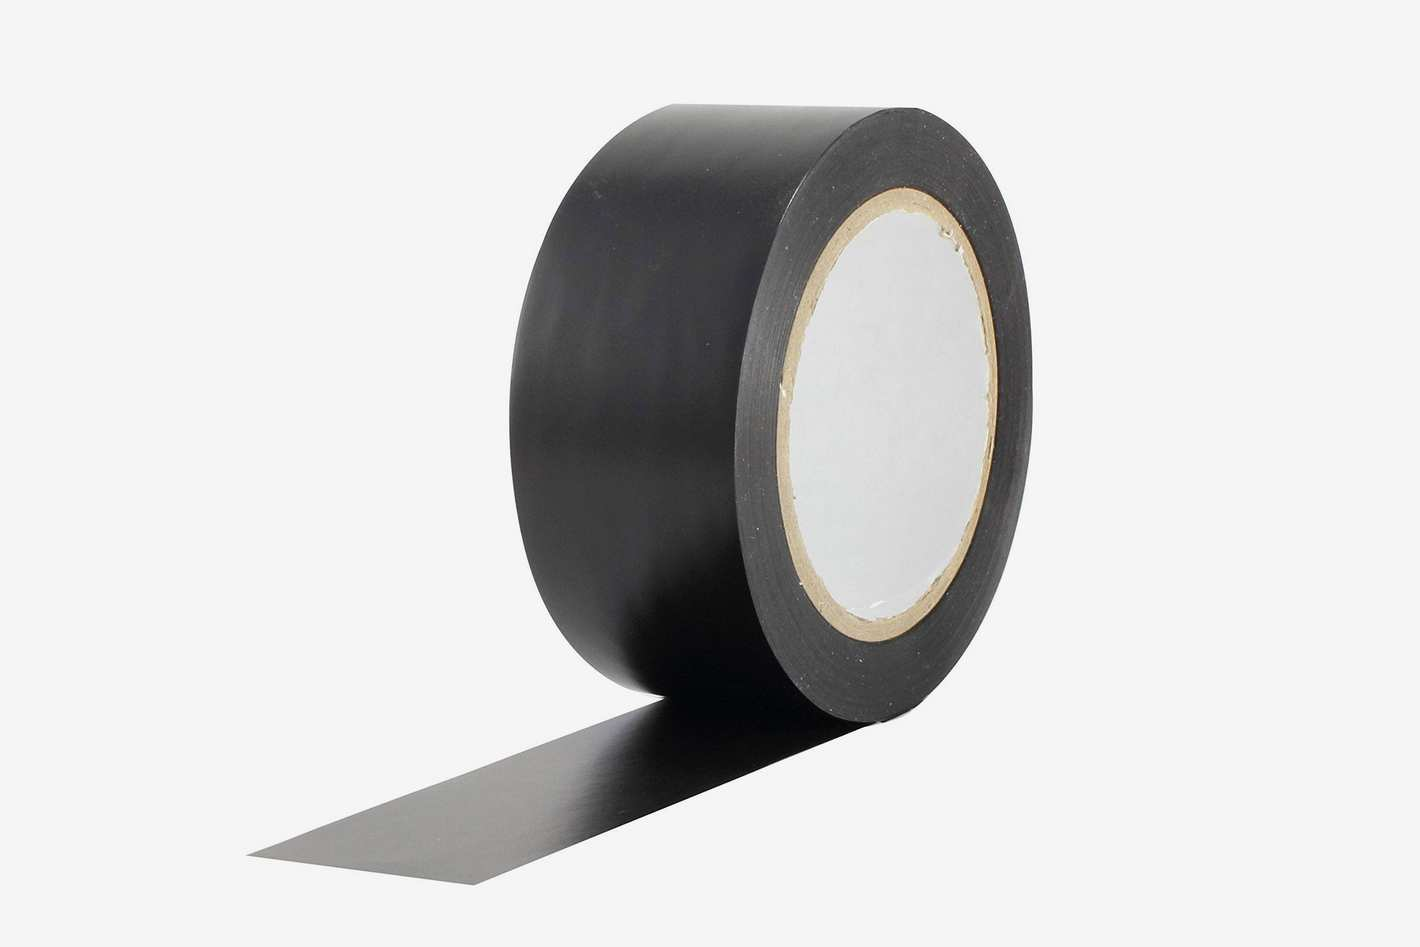 ProTapes Pro 50 Premium Vinyl Dance Floor Tape